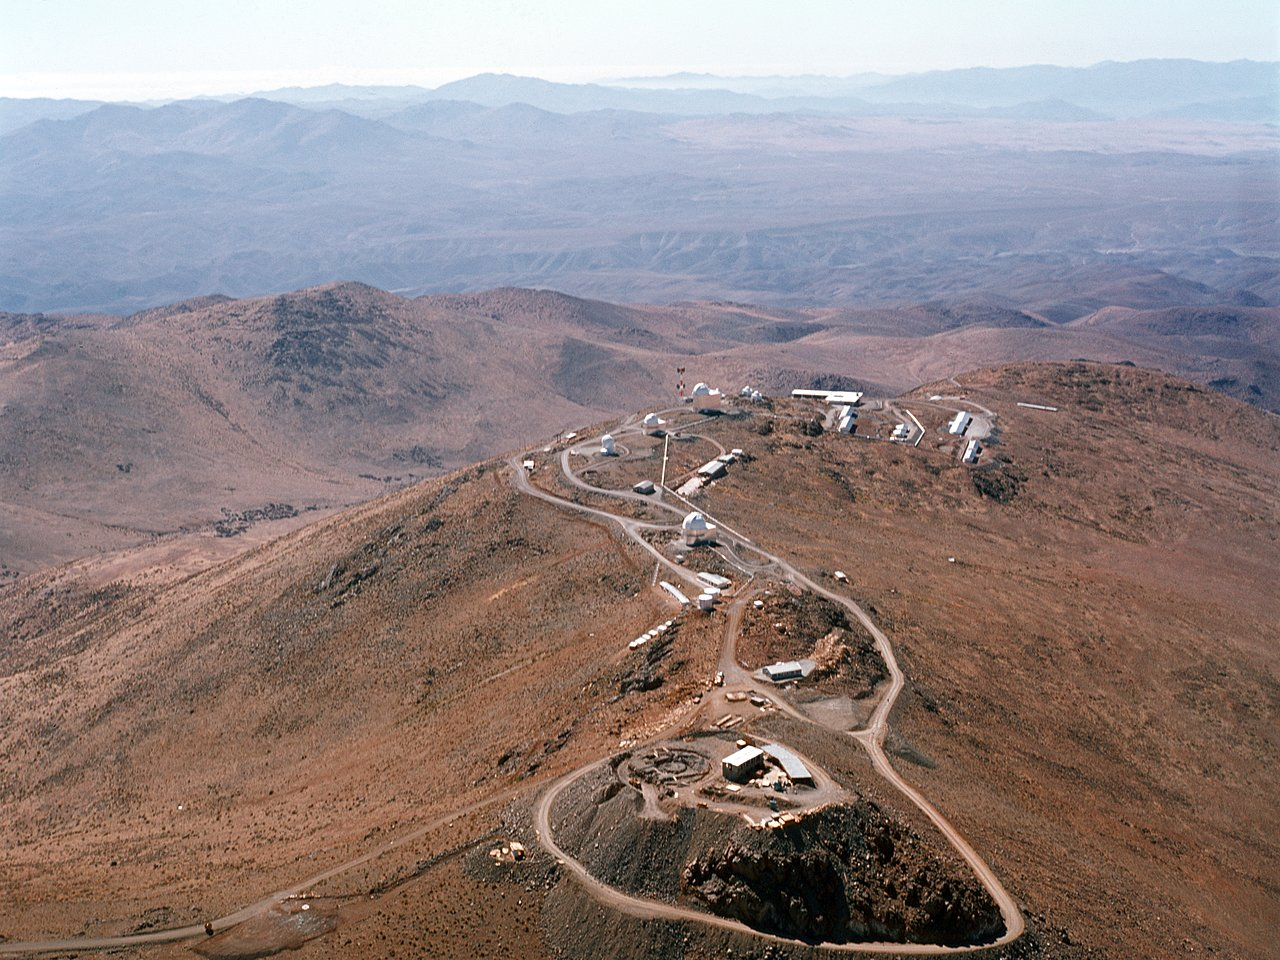 Aerial View of the La Silla Observatory